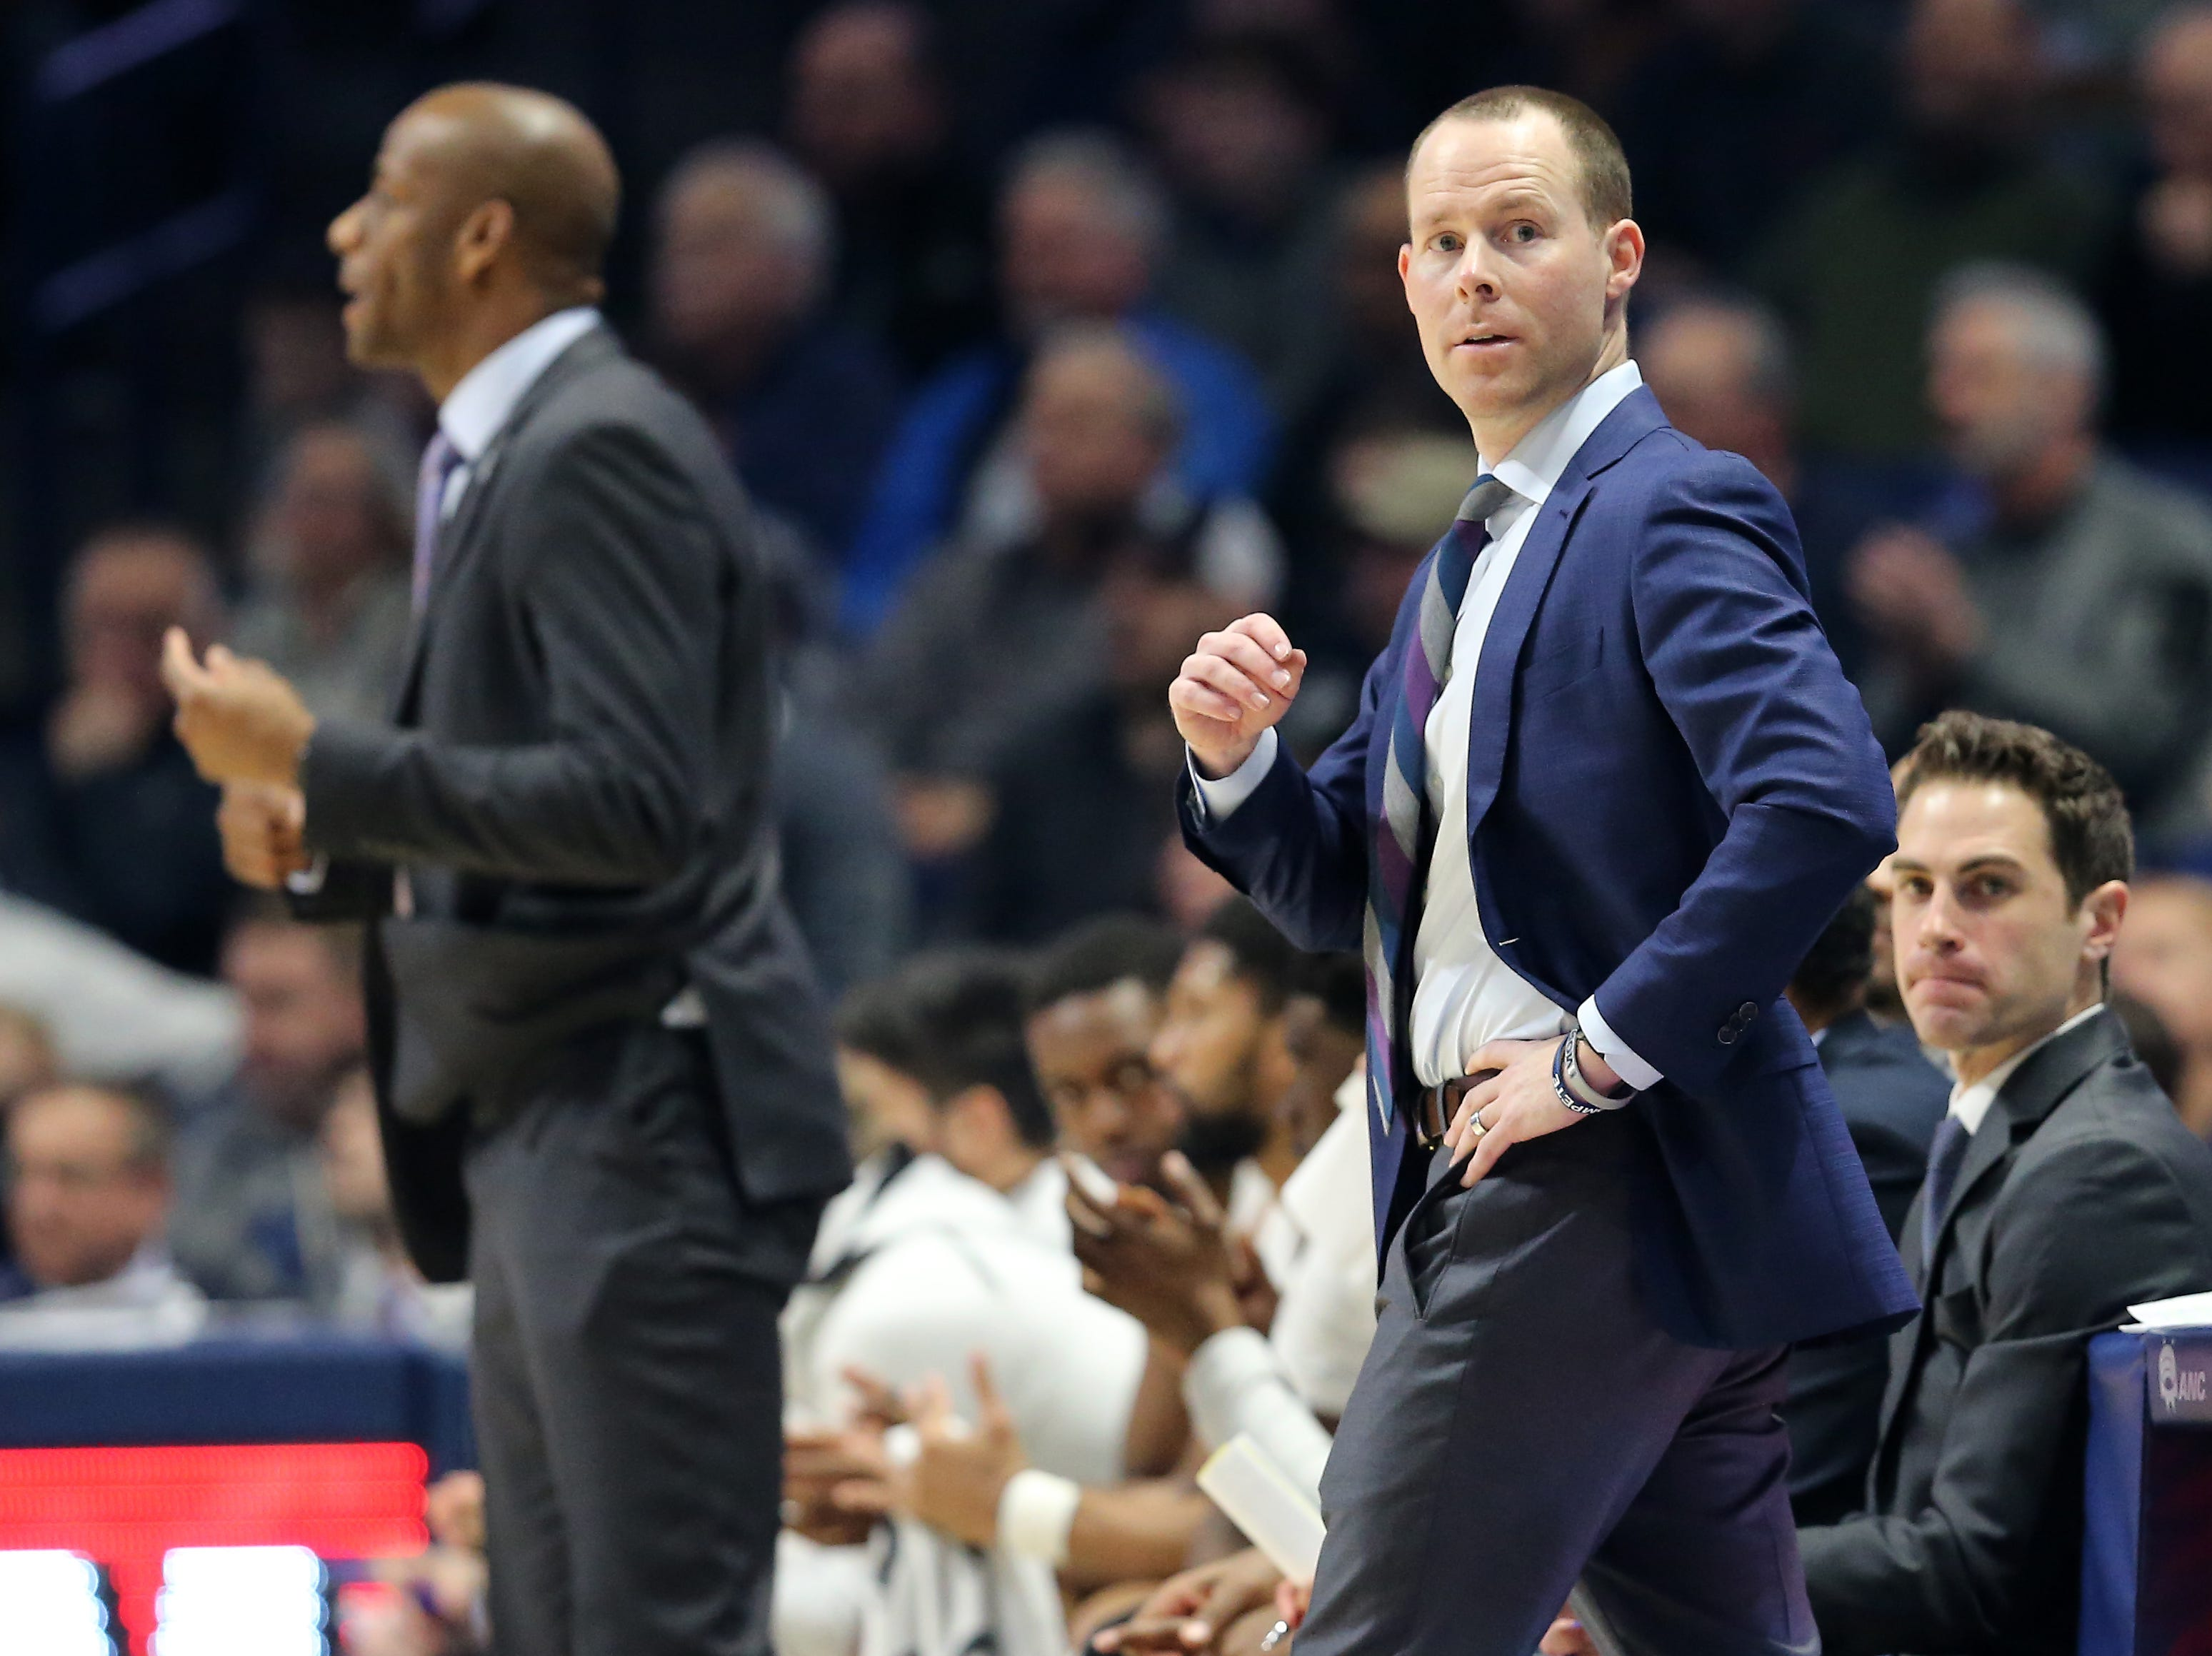 Xavier Musketeers head coach Travis Steele looks down toward the Georgetown Hoyas bench in the first half of an NCAA basketball game, Wednesday, Jan. 9, 2019, at the Cintas Center in Cincinnati.